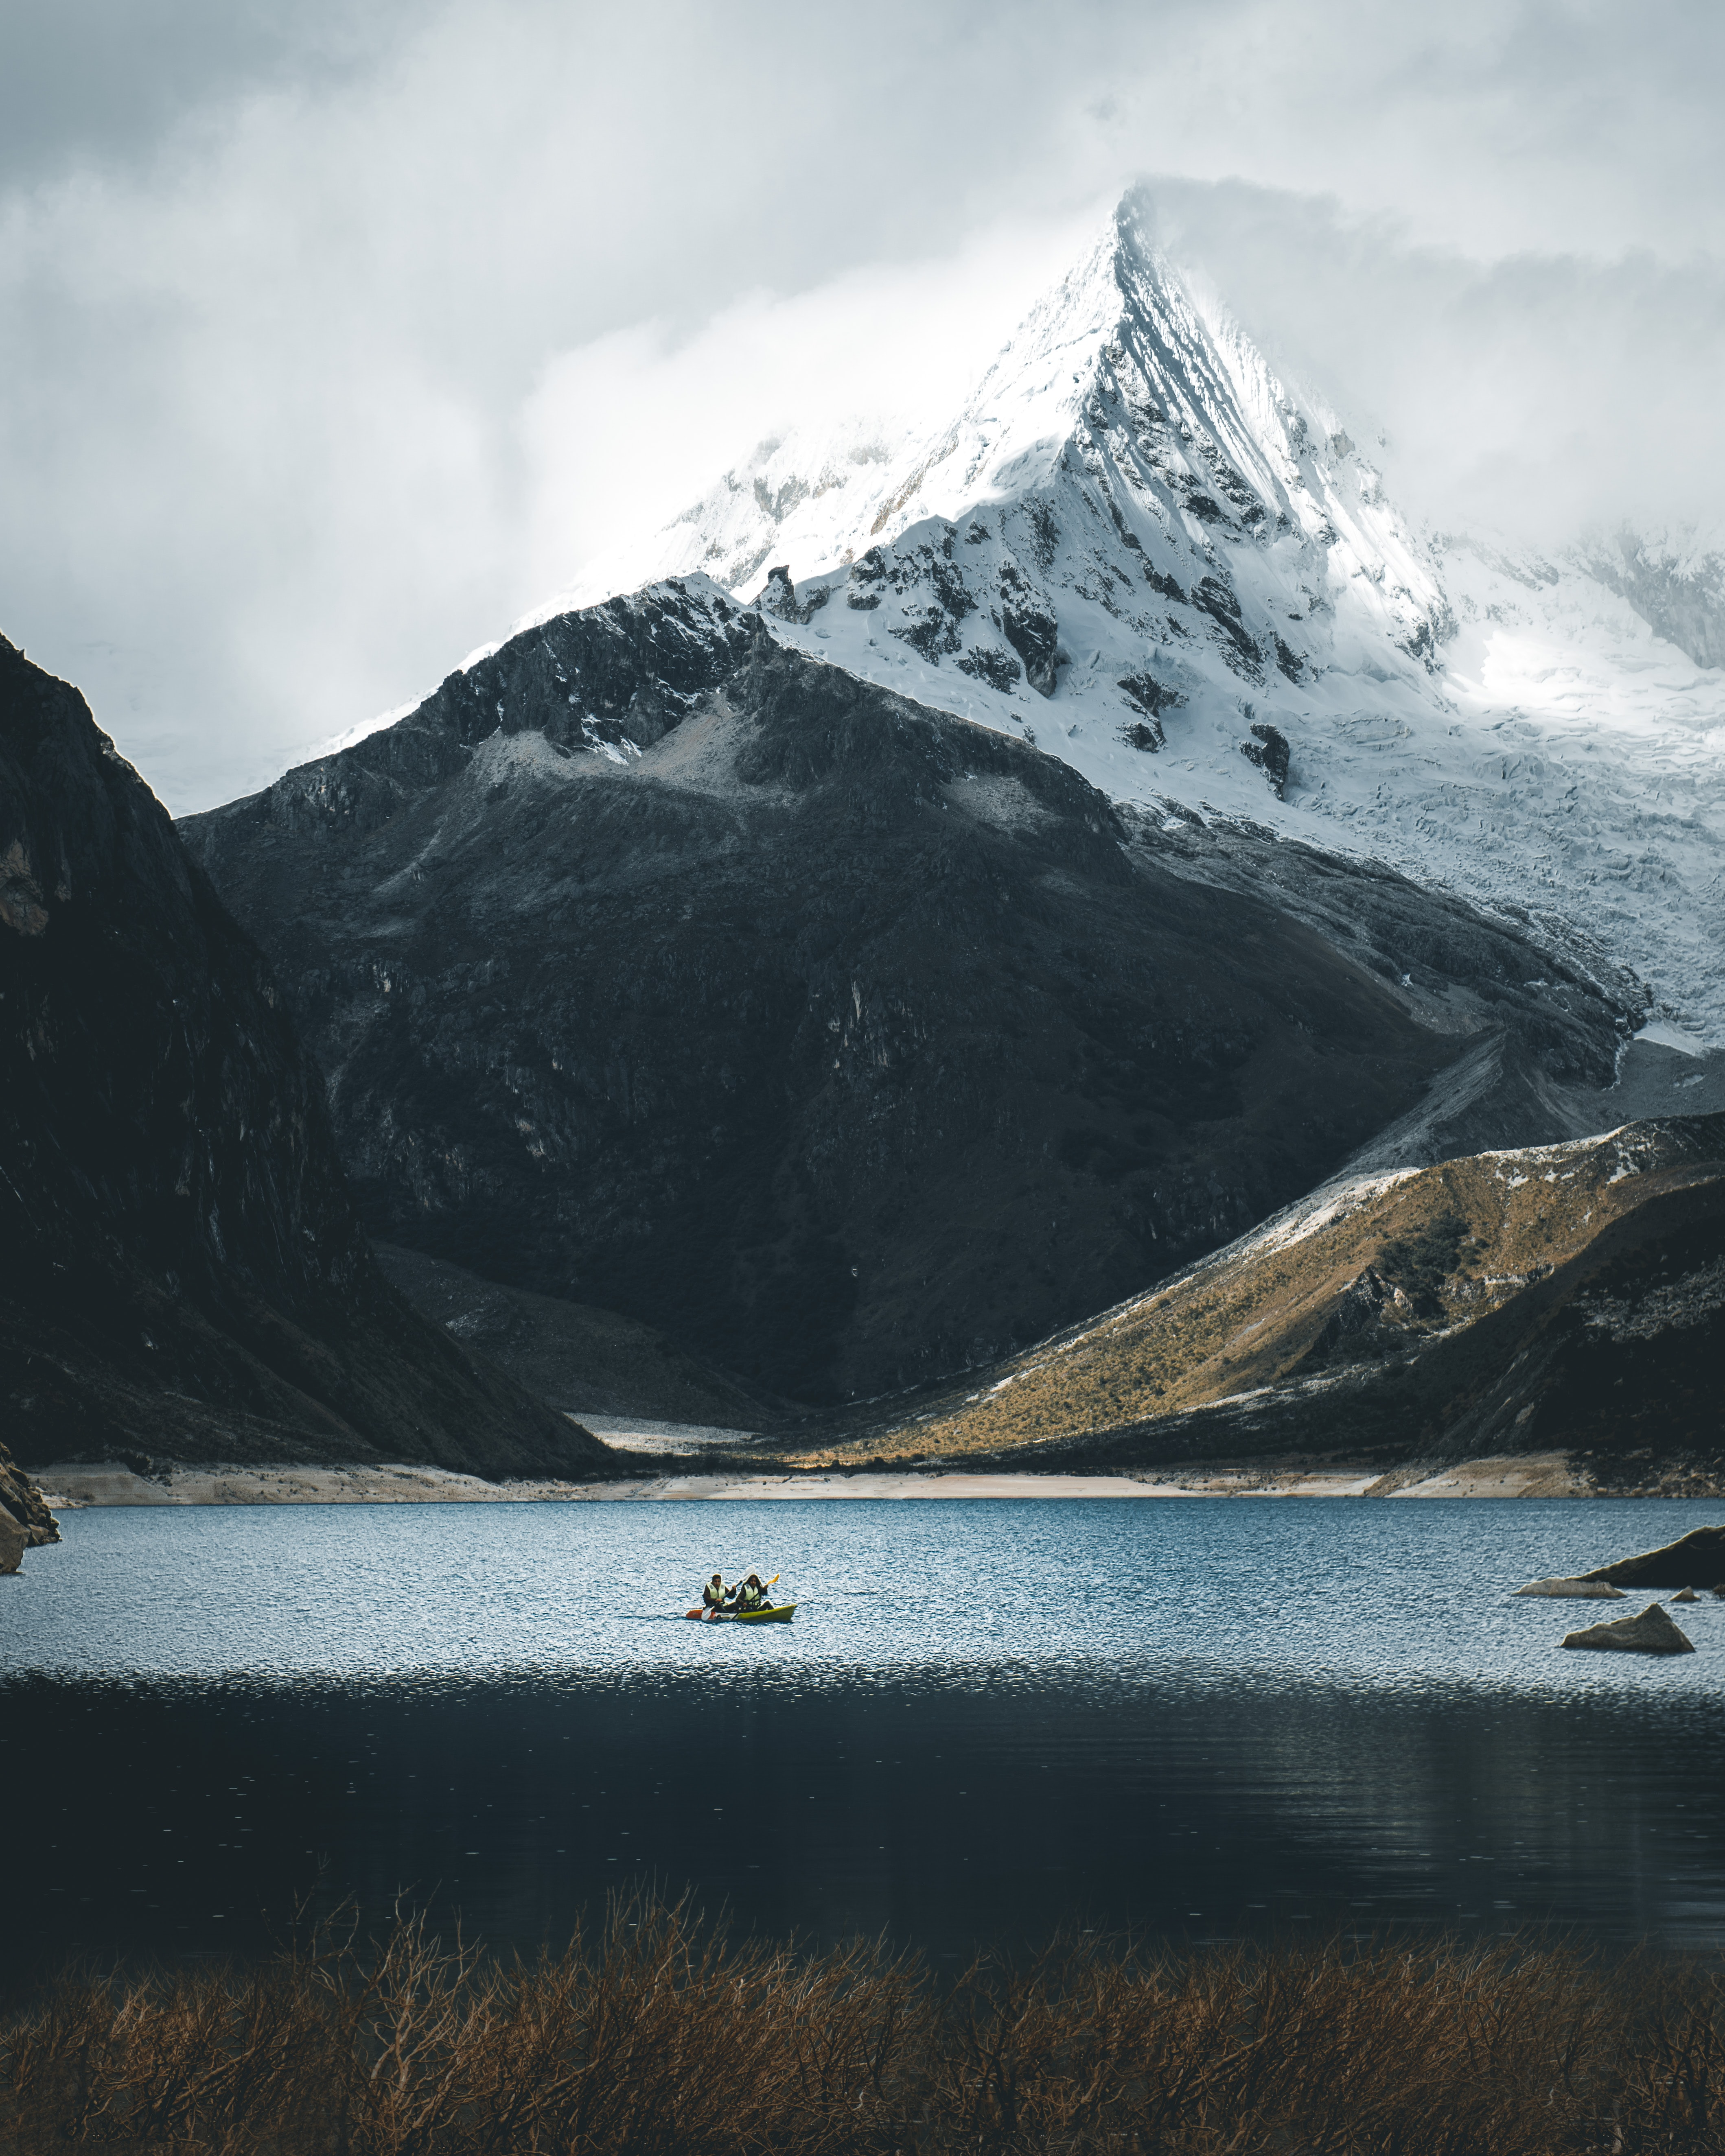 sail boat on body of water beside mountain with snow